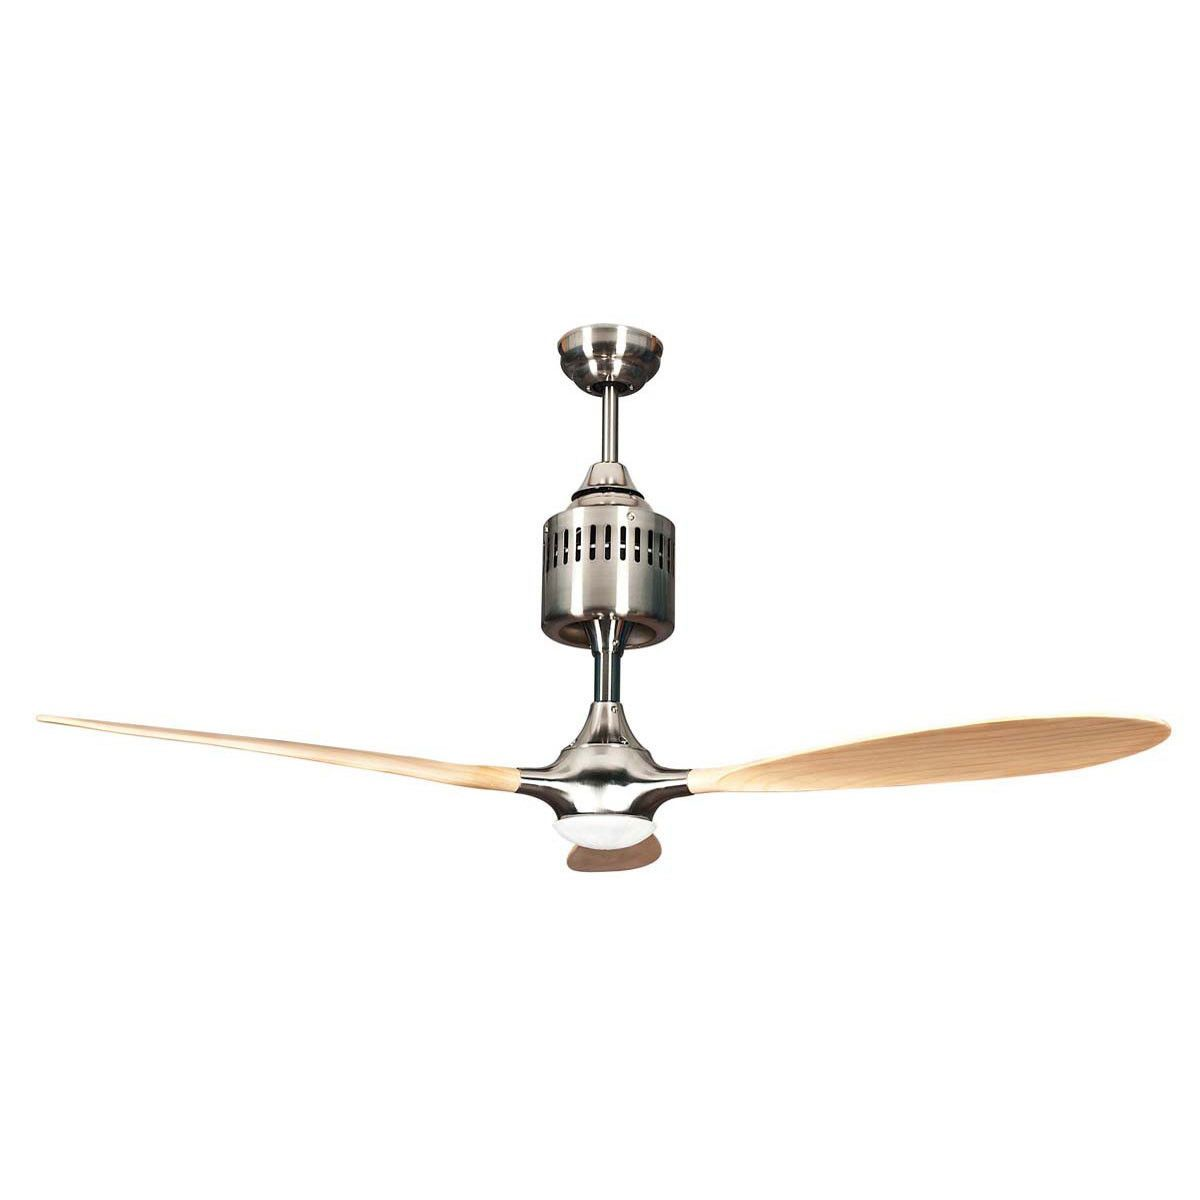 Concord Fans 60 Pilot Modern Stainless Steel Ceiling Fan With Light Remote